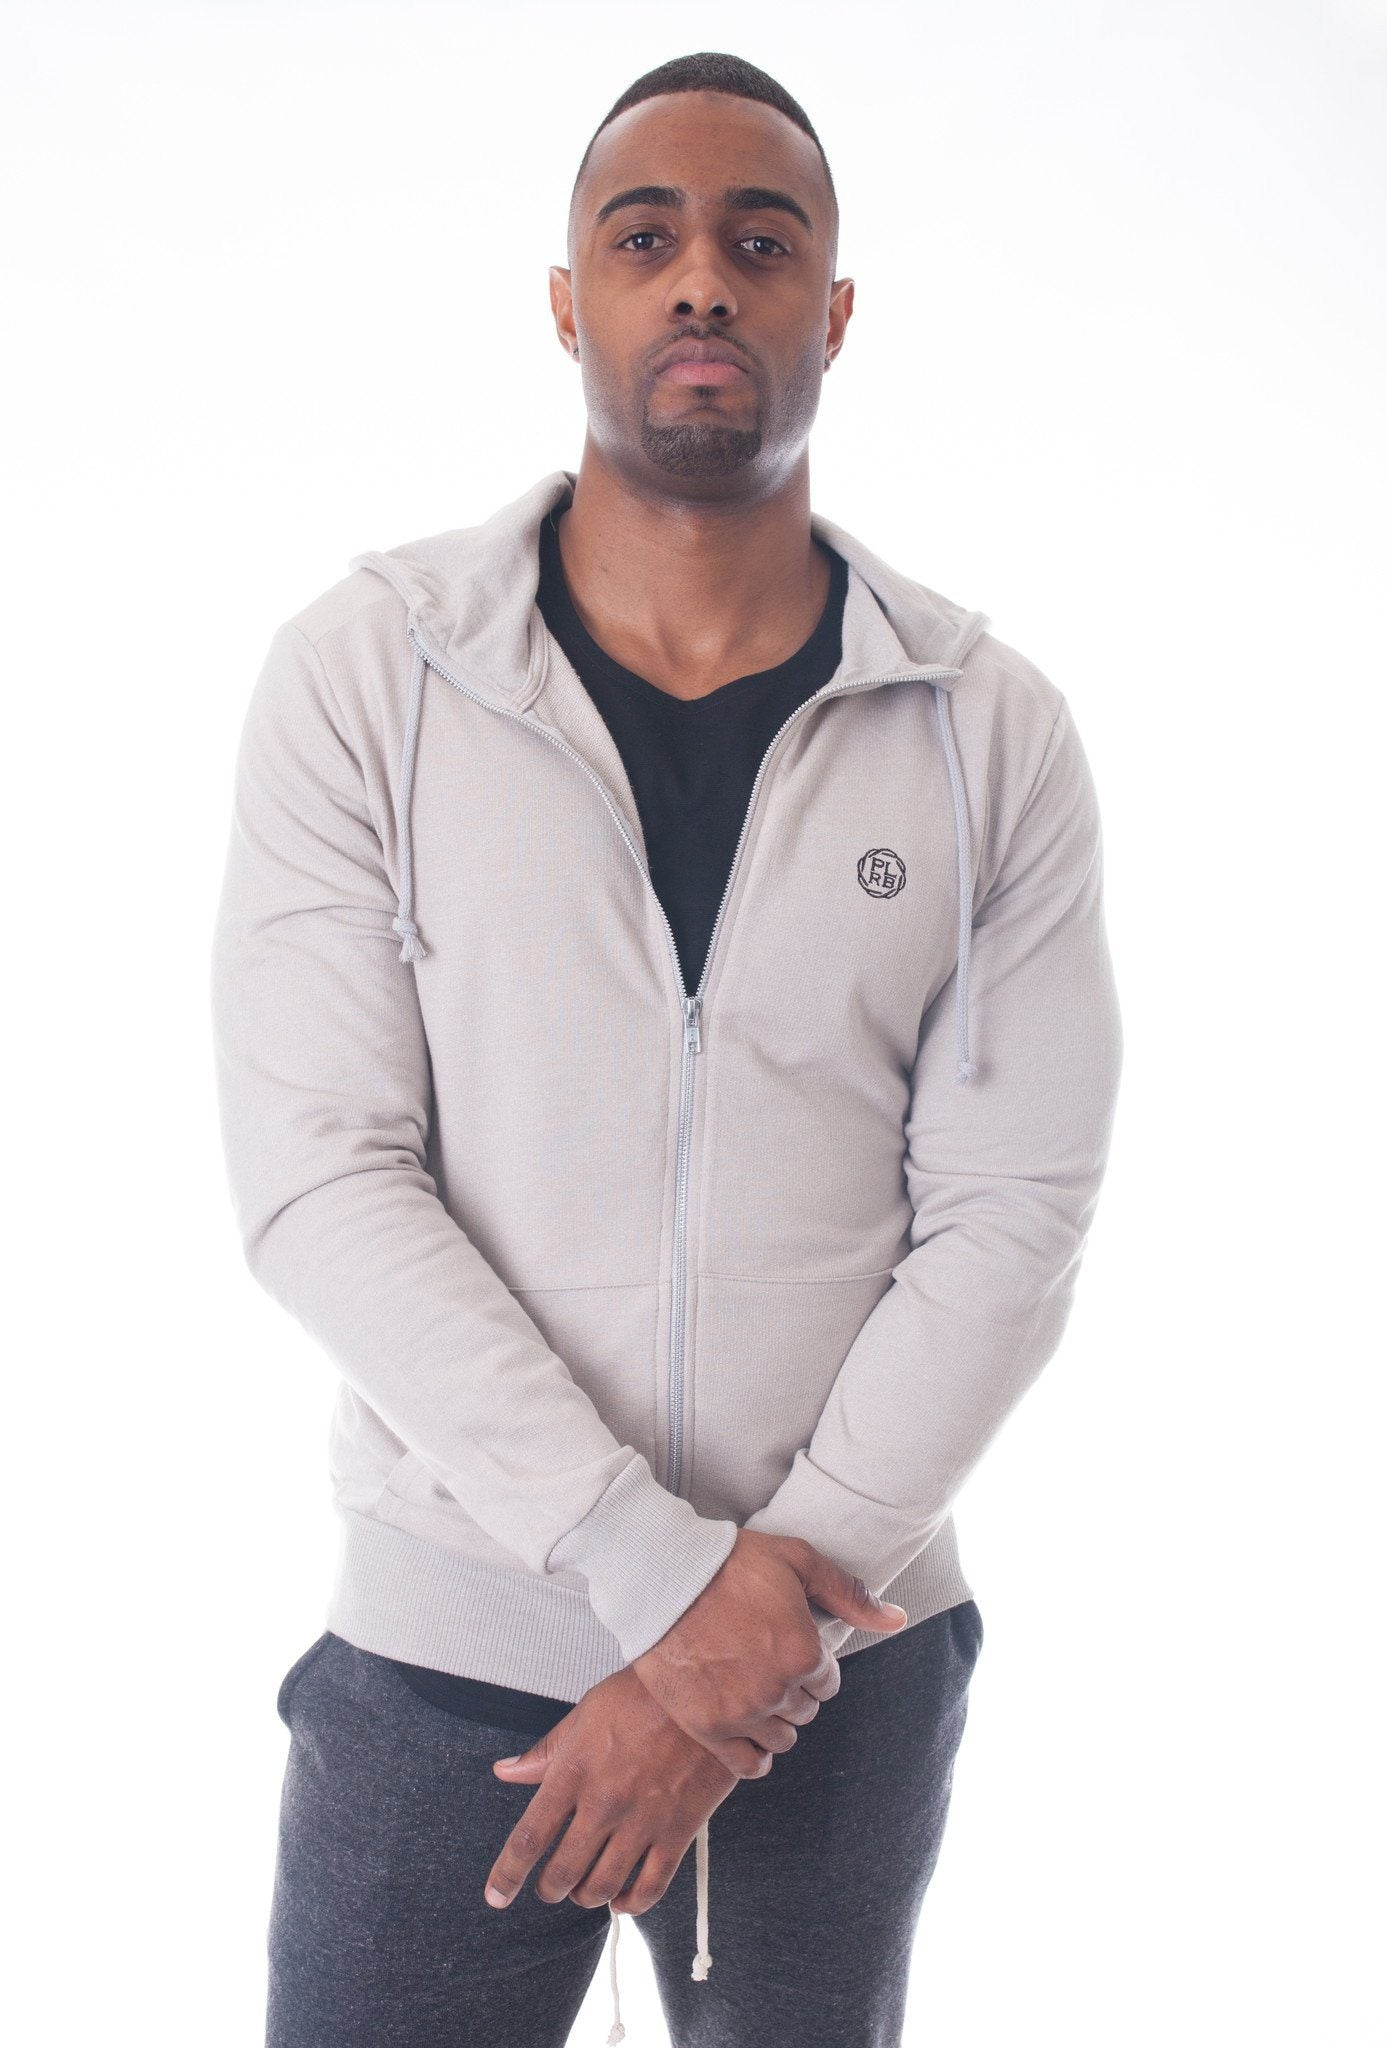 MIST HOODED SWEATSHIRT | Poor Little Rich Boy Clothing